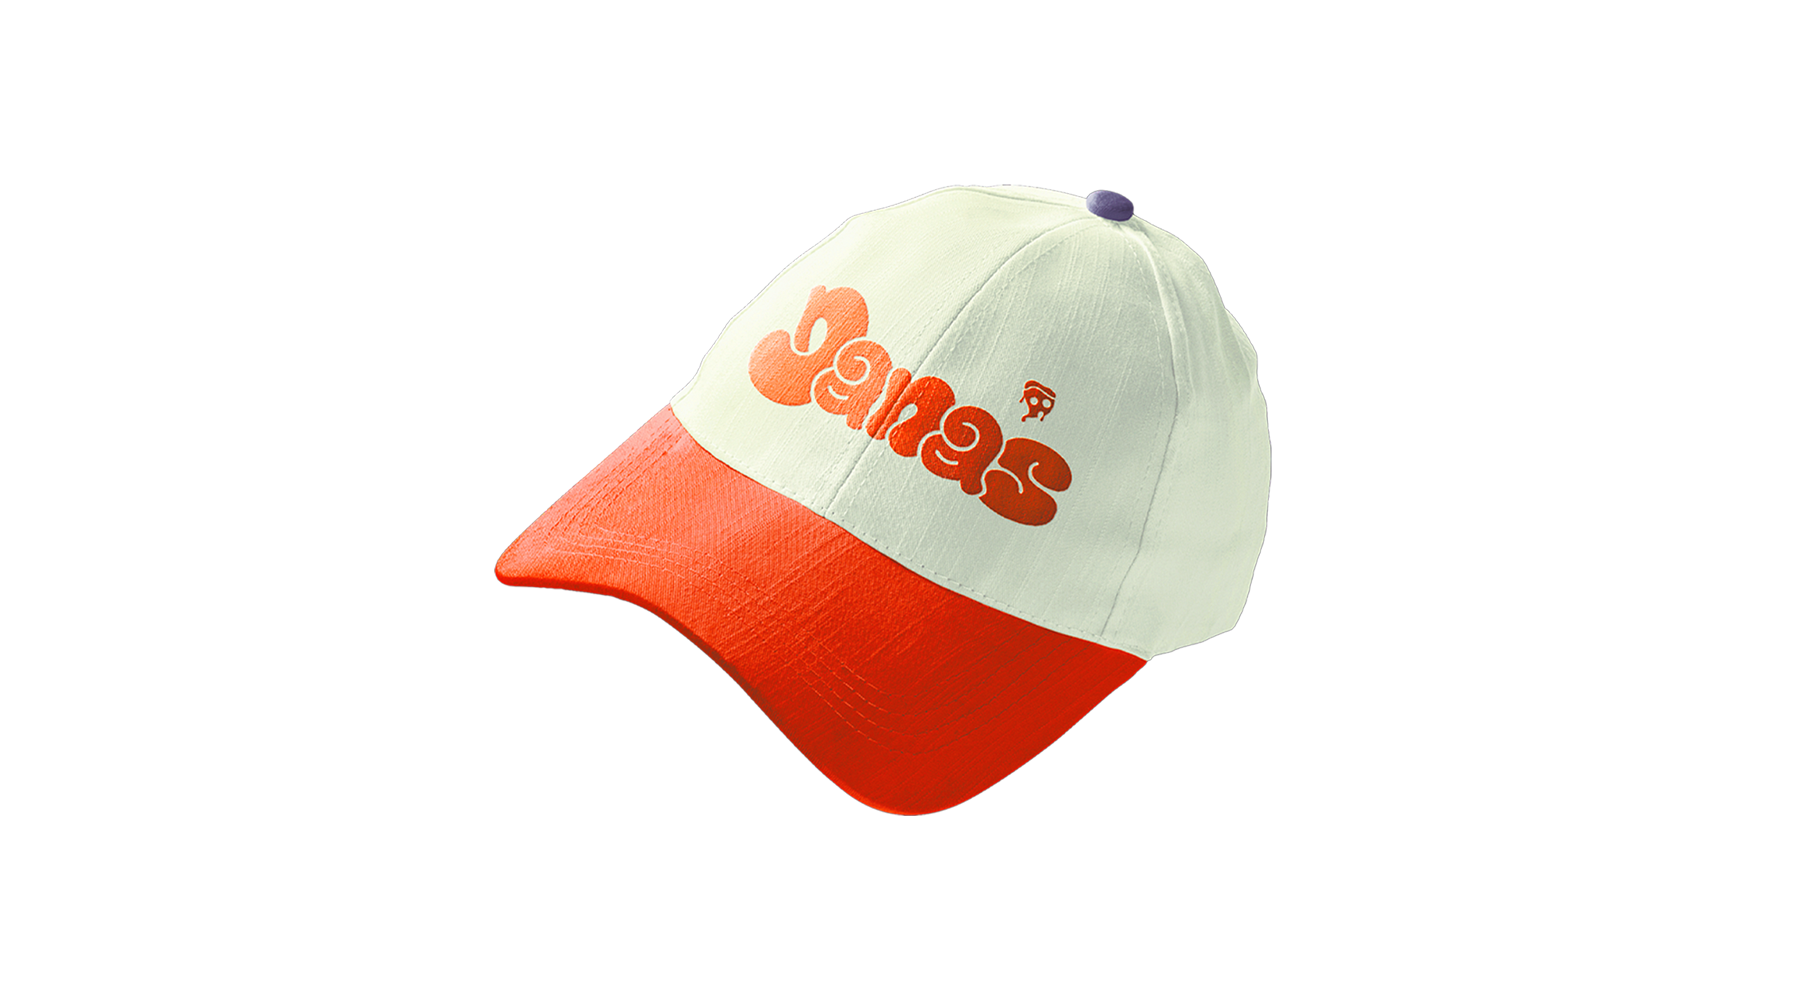 a hat with the Dana's logo